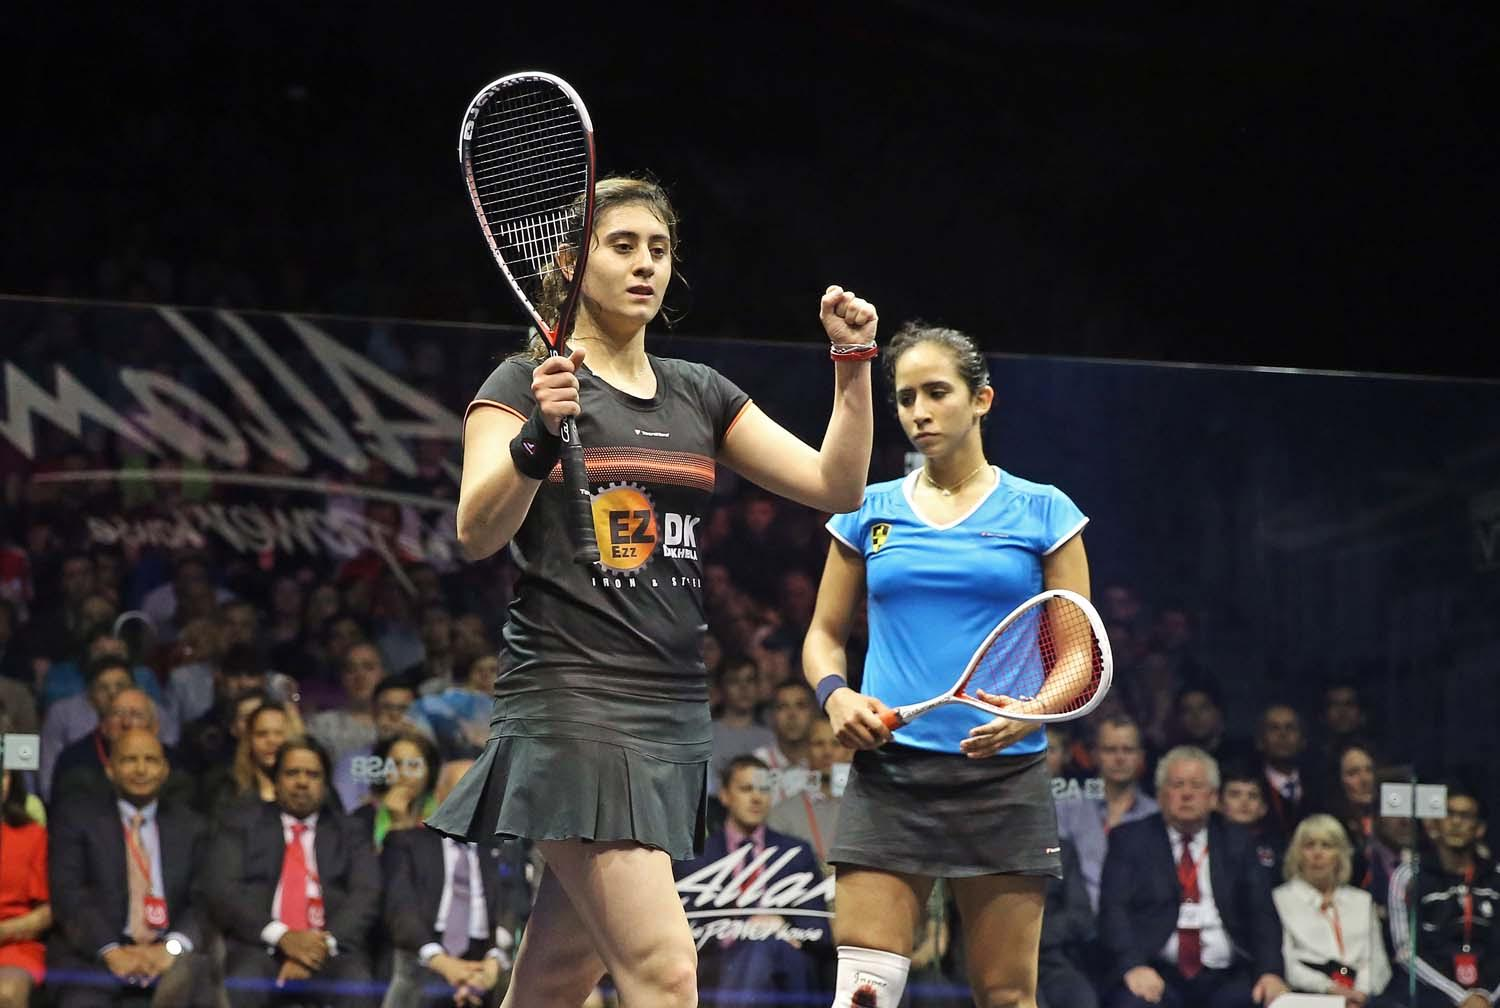 Nour El Sherbini celebrates winning the British Open final